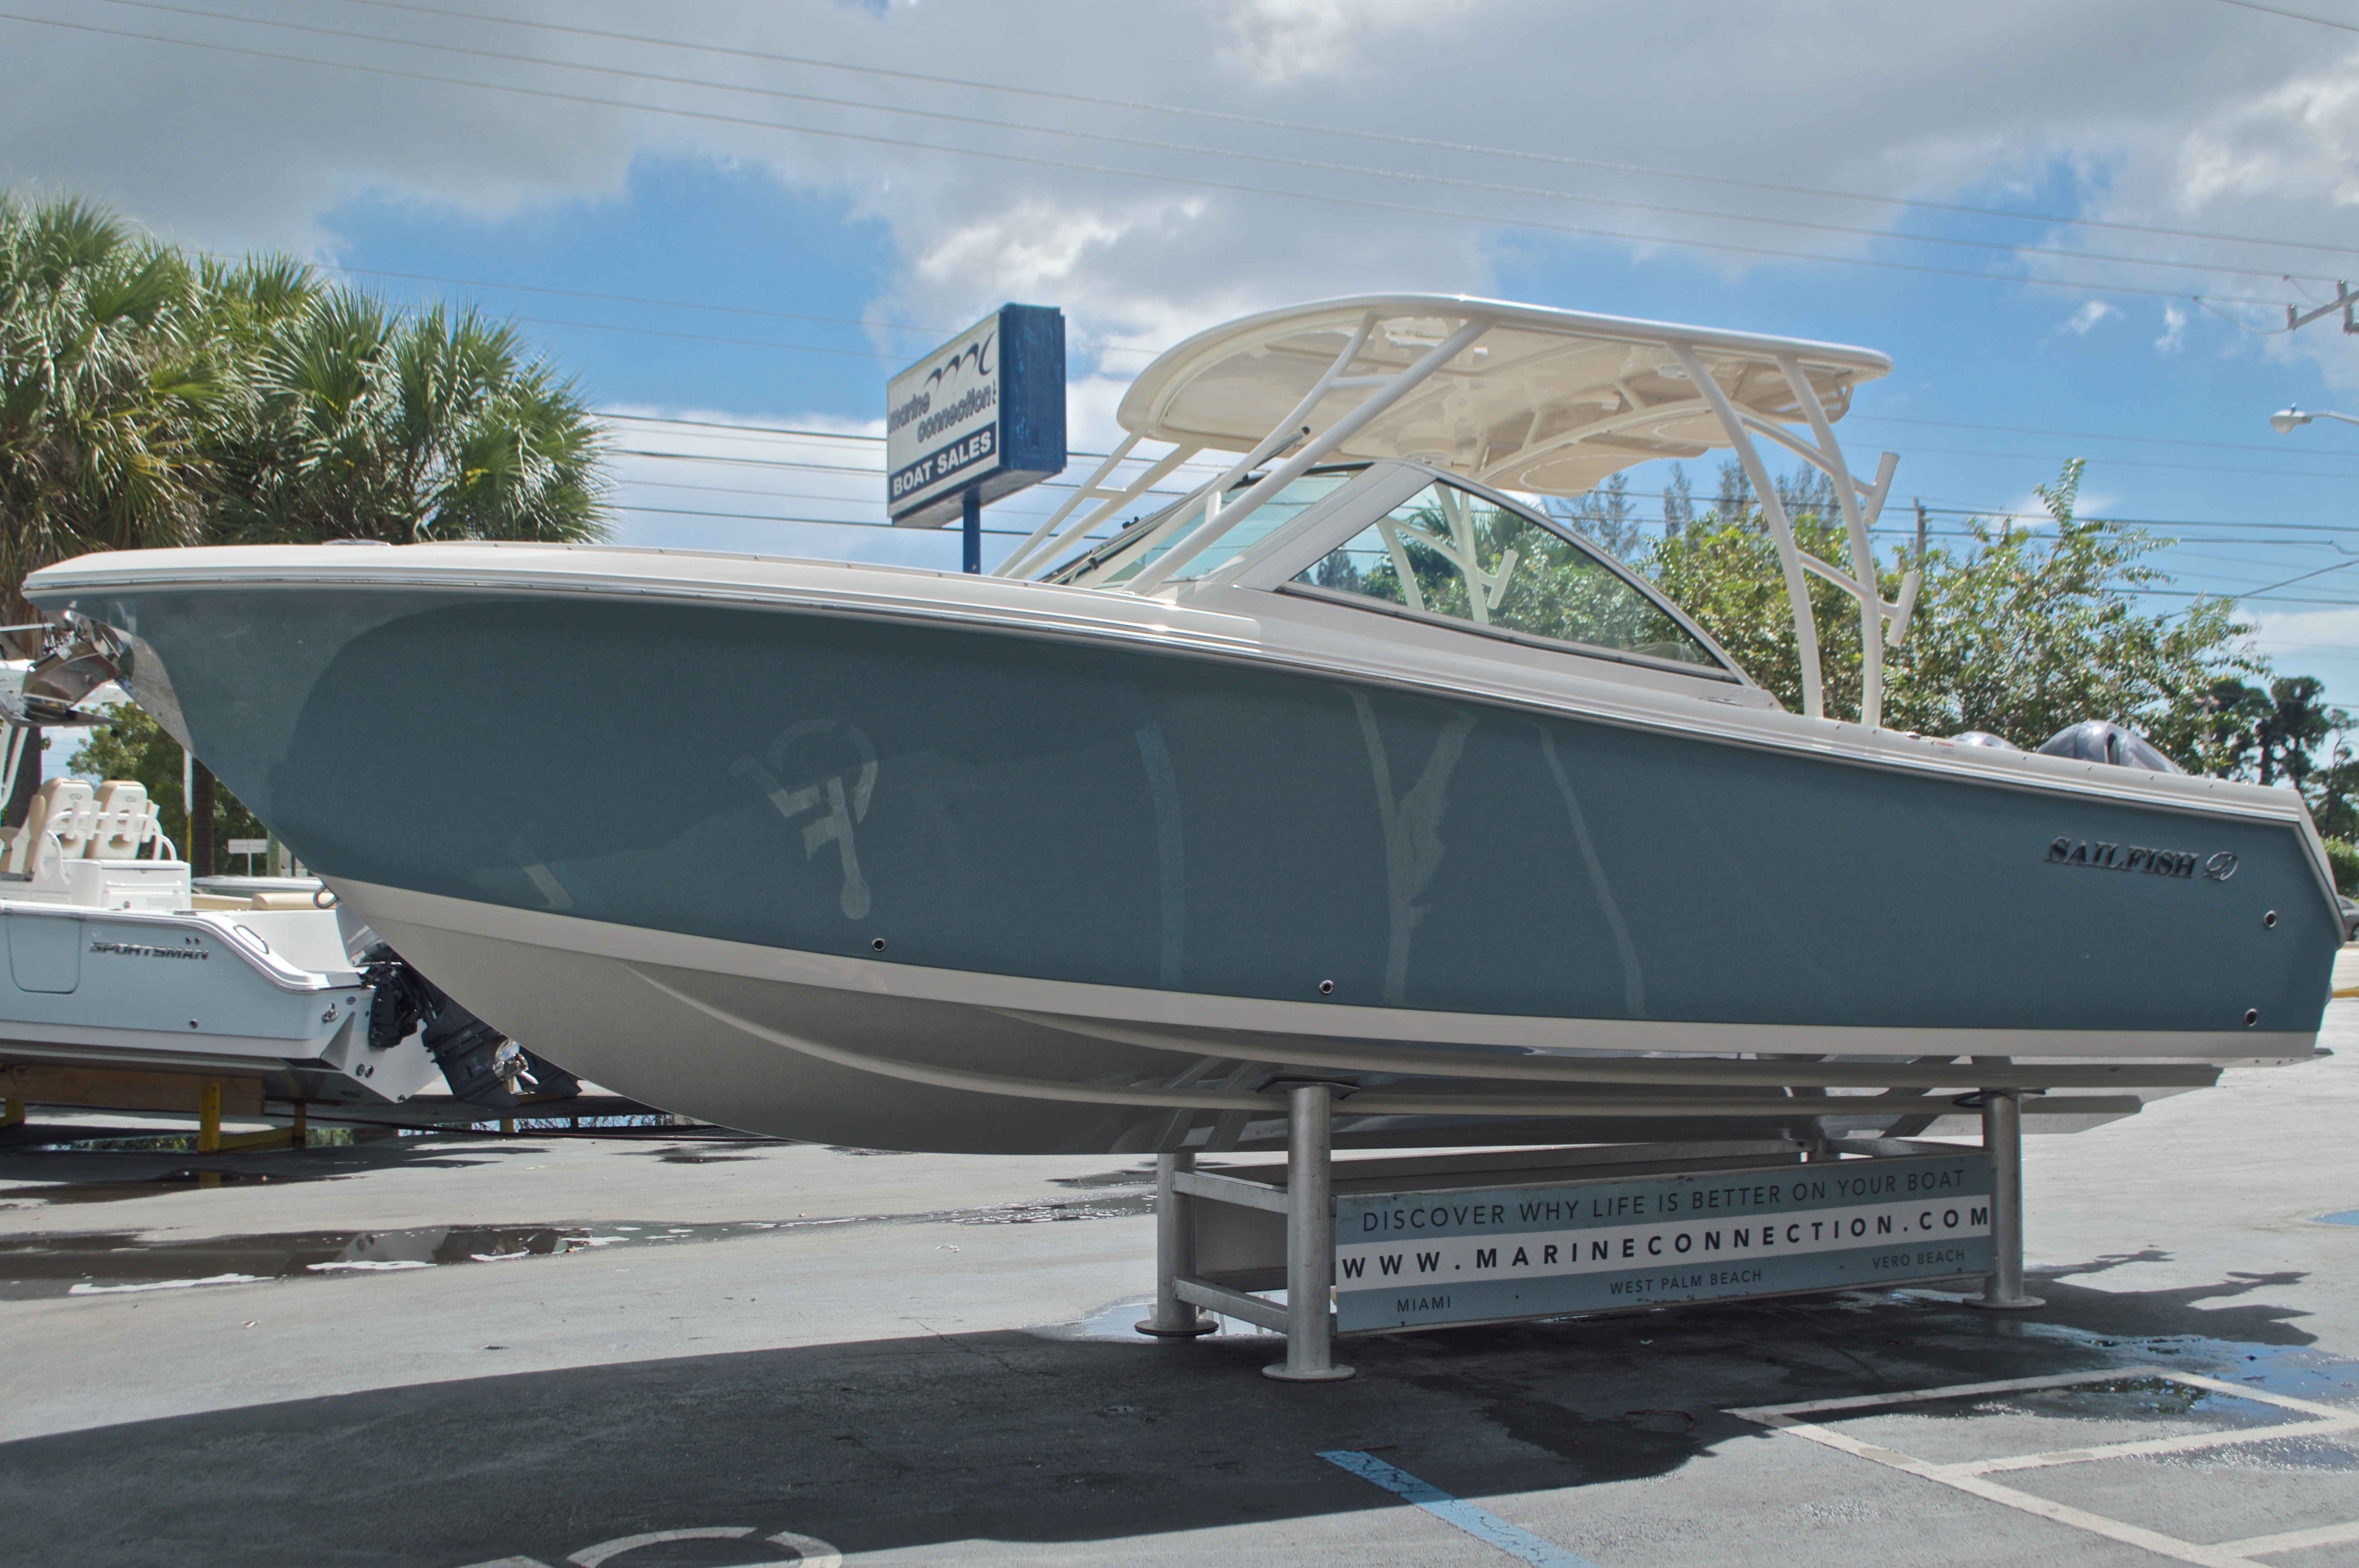 Thumbnail 3 for New 2017 Sailfish 275 Dual Console boat for sale in Vero Beach, FL